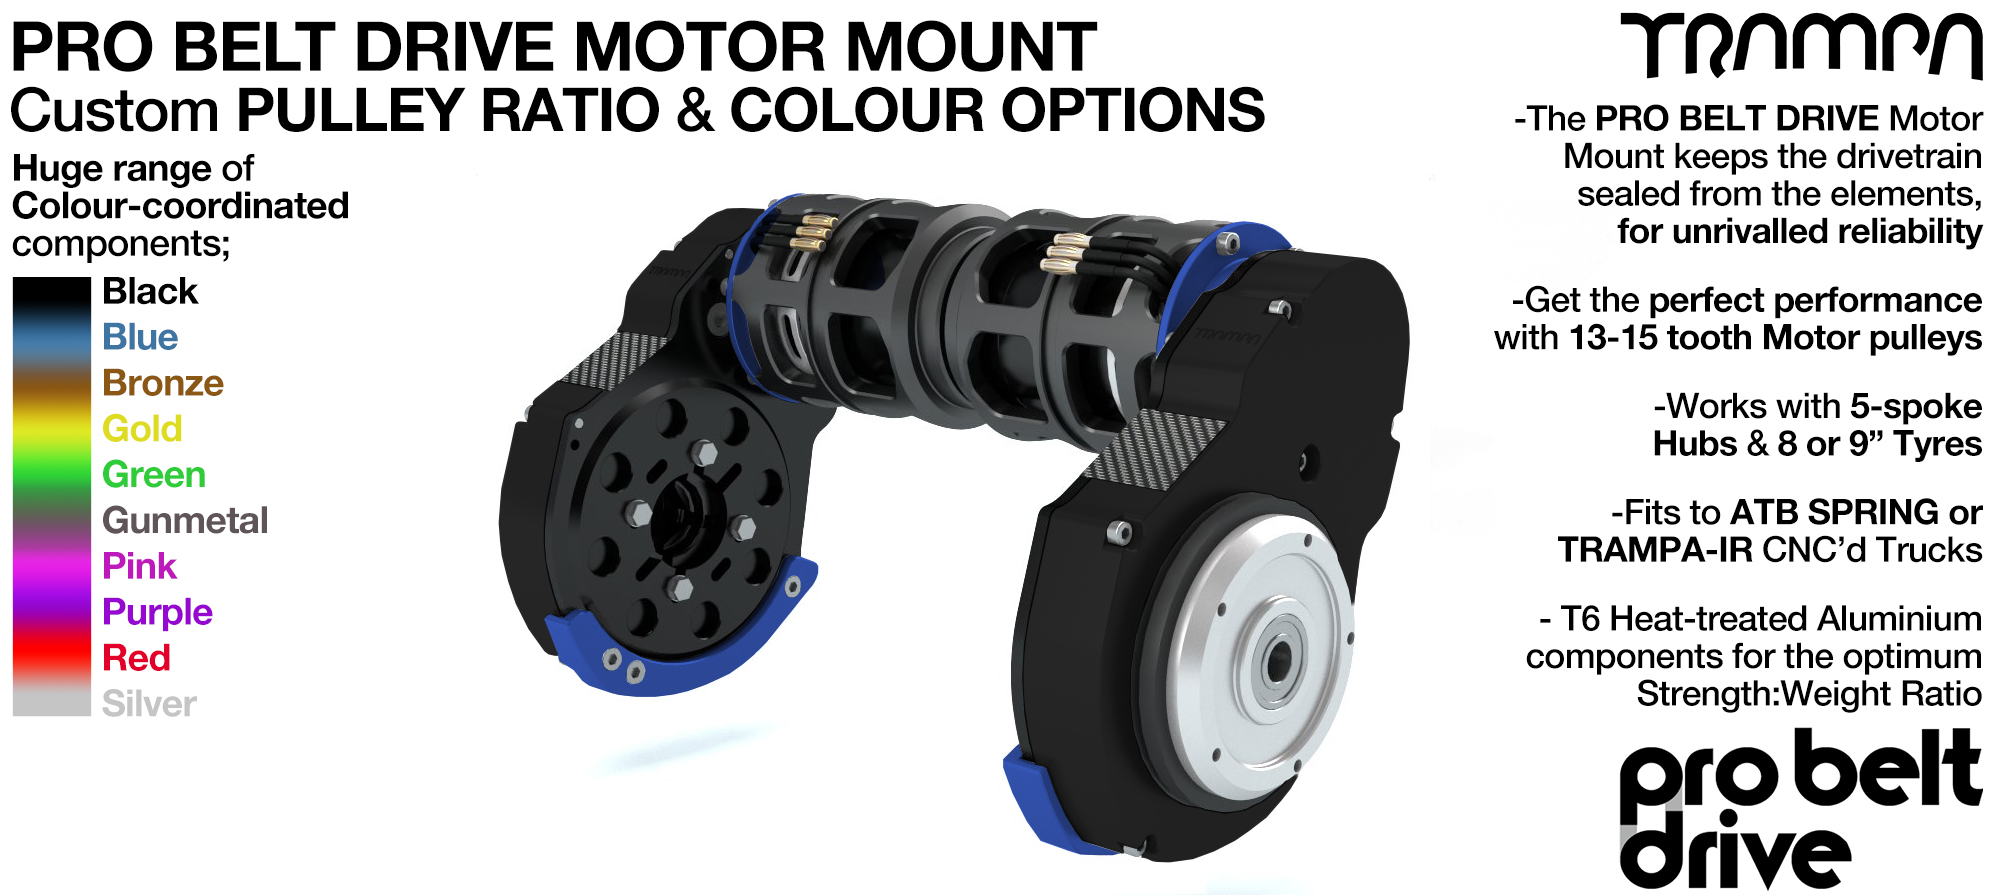 Mountainboard PRO Belt Drive TWIN Motor Mounts with Motors - Custom